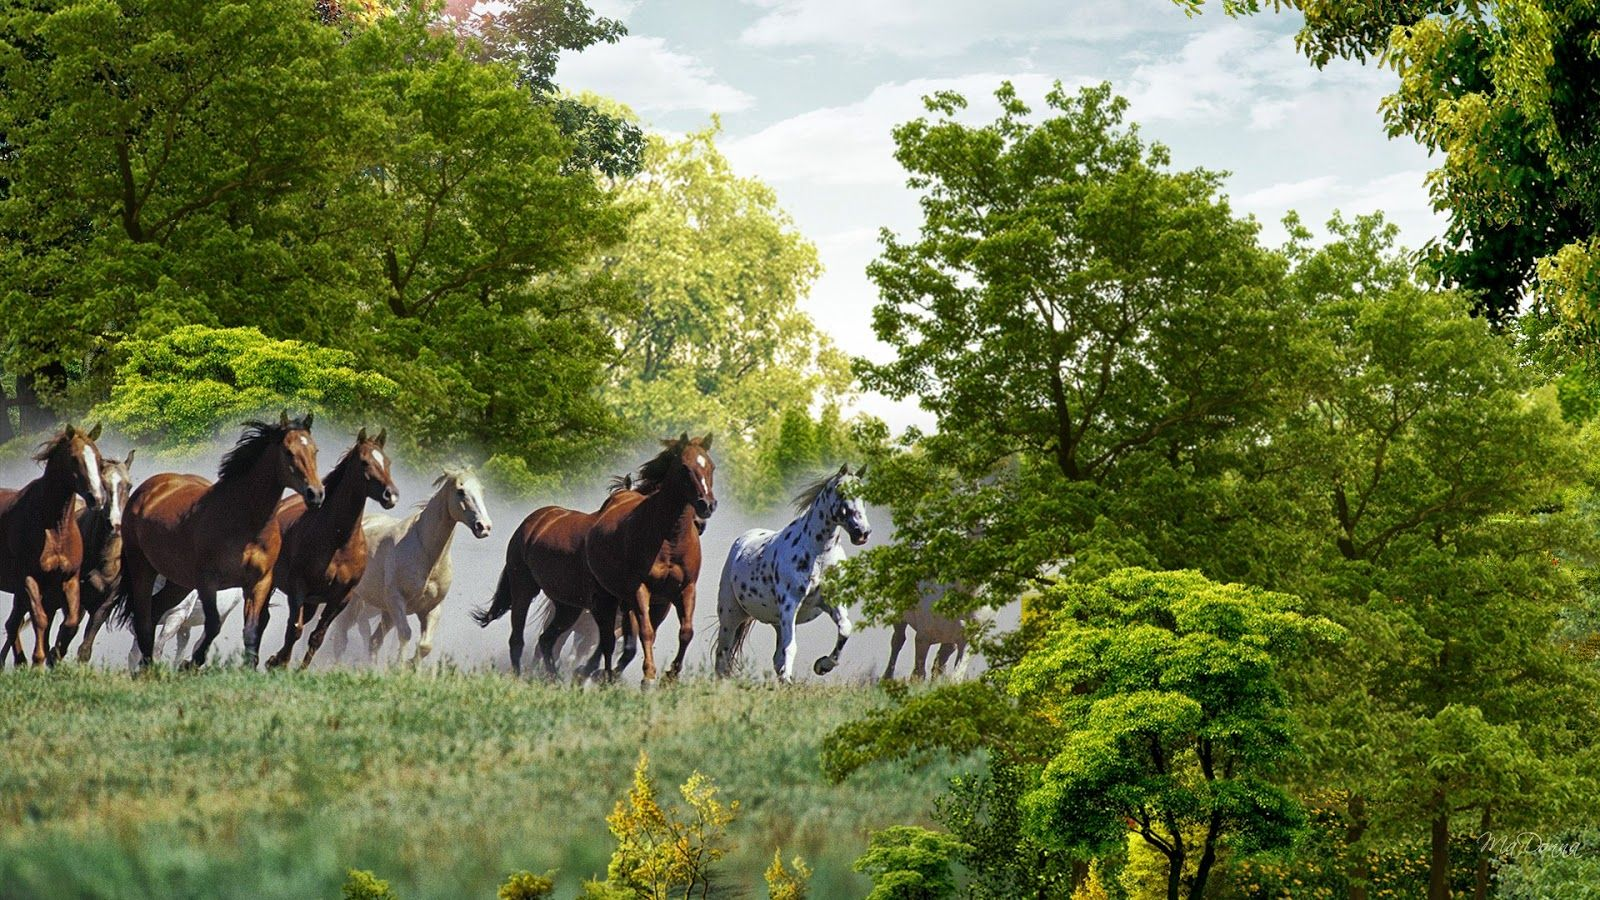 Must see Wallpaper Horse Landscape - 4160c2d1f28473772a934b864614770c  You Should Have_366320.jpg